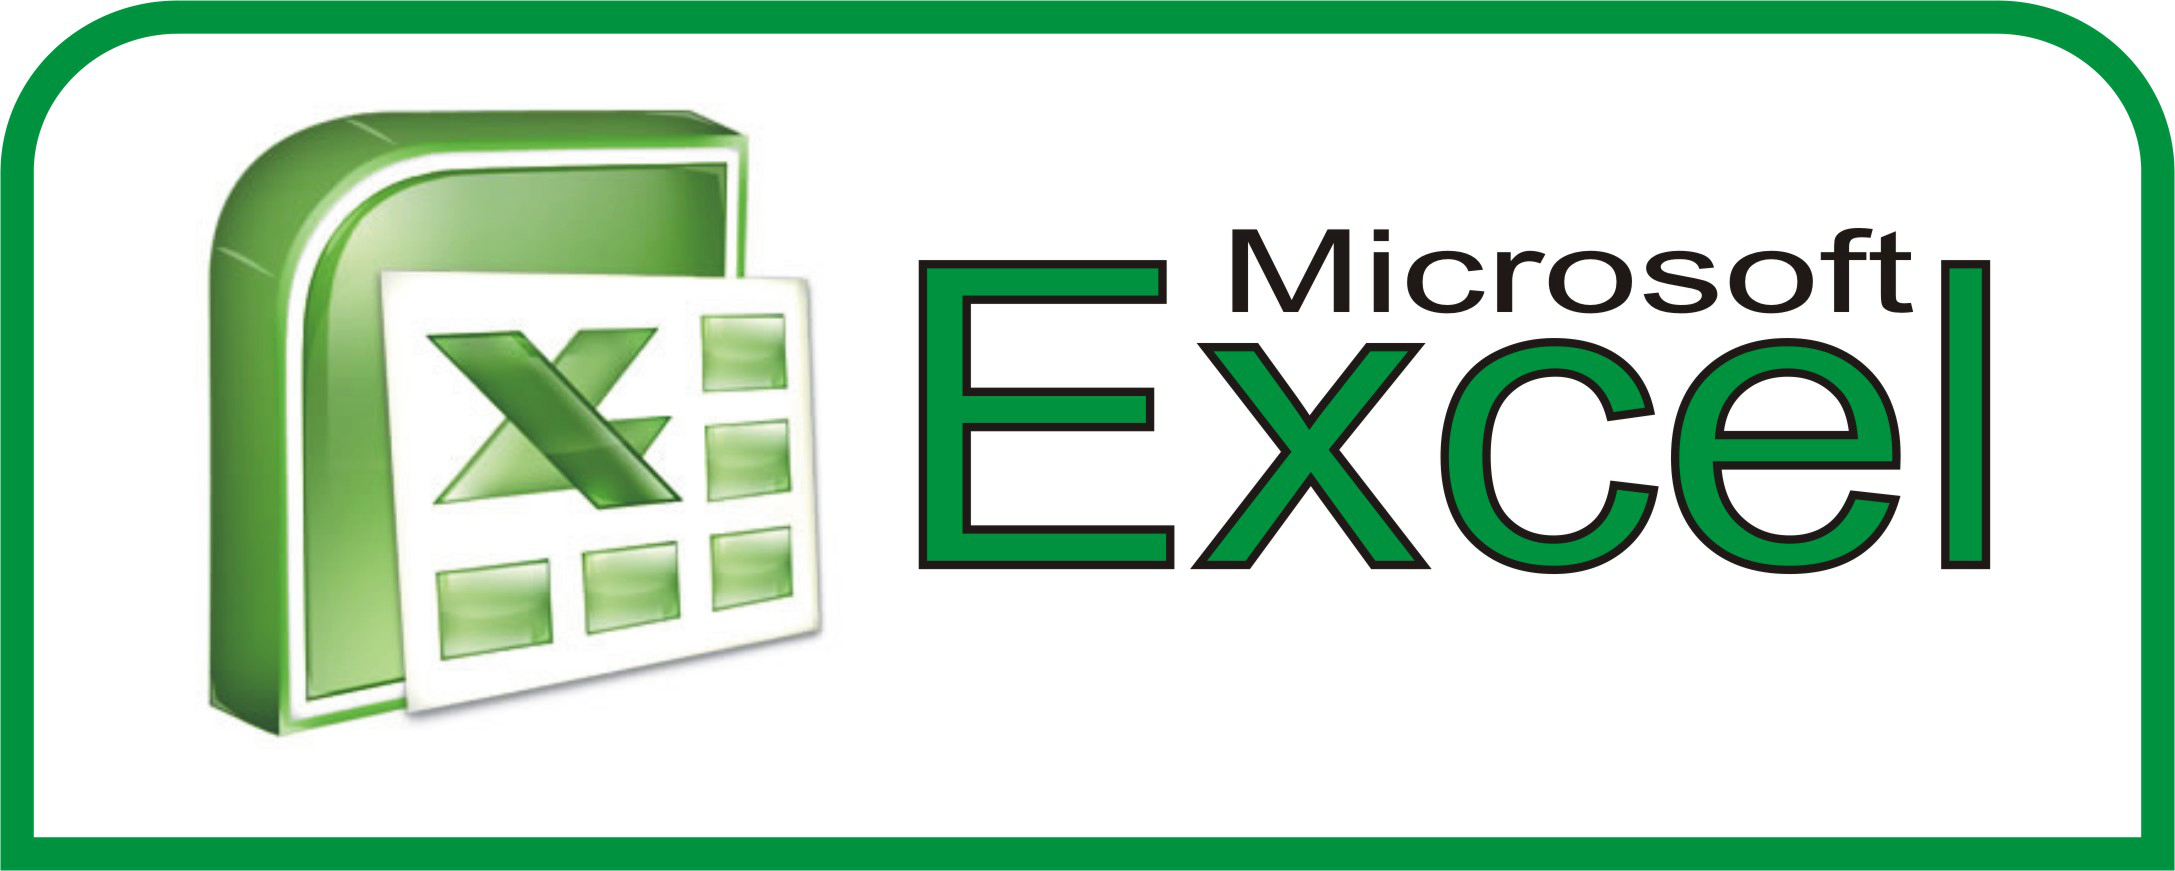 Ediblewildsus  Winning  Excel Shortcuts You Probably Didnt Know About  Techdissected With Engaging Excel Training Online Besides How To Add To Drop Down List In Excel Furthermore Combining Cells In Excel With Awesome How To Select Range In Excel Also Excel Define In Addition Delete A Row In Excel And Excel London As Well As Autofit Columns In Excel Additionally What Are Macros In Excel From Techdissectedcom With Ediblewildsus  Engaging  Excel Shortcuts You Probably Didnt Know About  Techdissected With Awesome Excel Training Online Besides How To Add To Drop Down List In Excel Furthermore Combining Cells In Excel And Winning How To Select Range In Excel Also Excel Define In Addition Delete A Row In Excel From Techdissectedcom